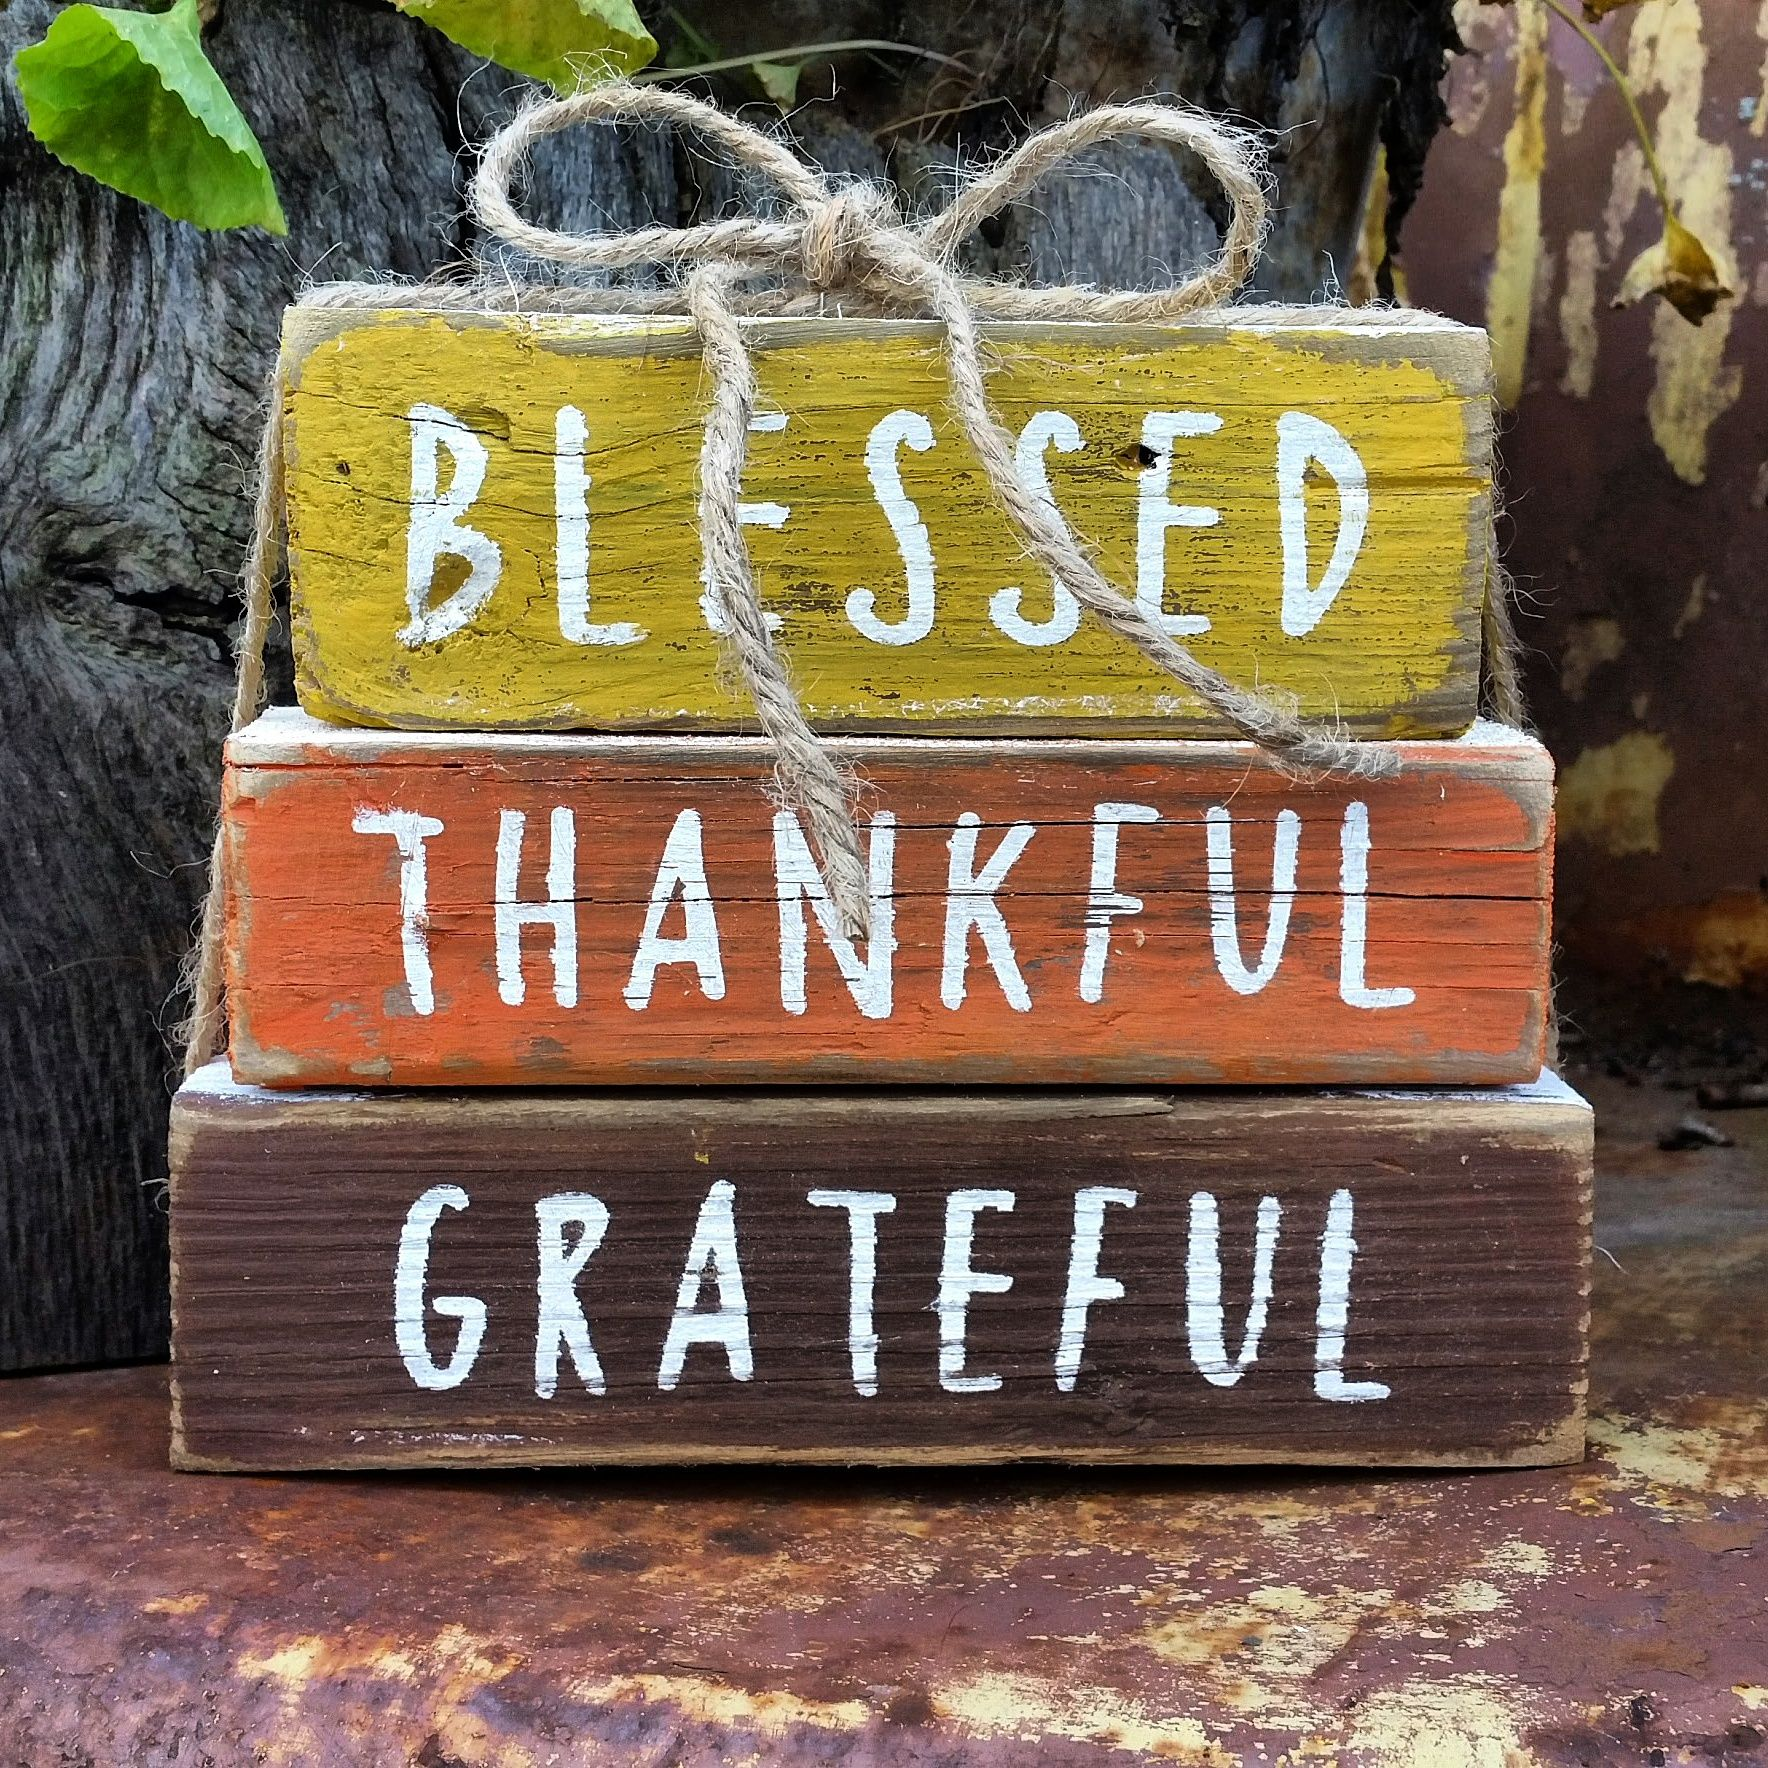 new great new wooden fall sign shaped like a pumpkin and wooden fall stackable blocks home decor fall home decor harvest decor thankful blessed grateful